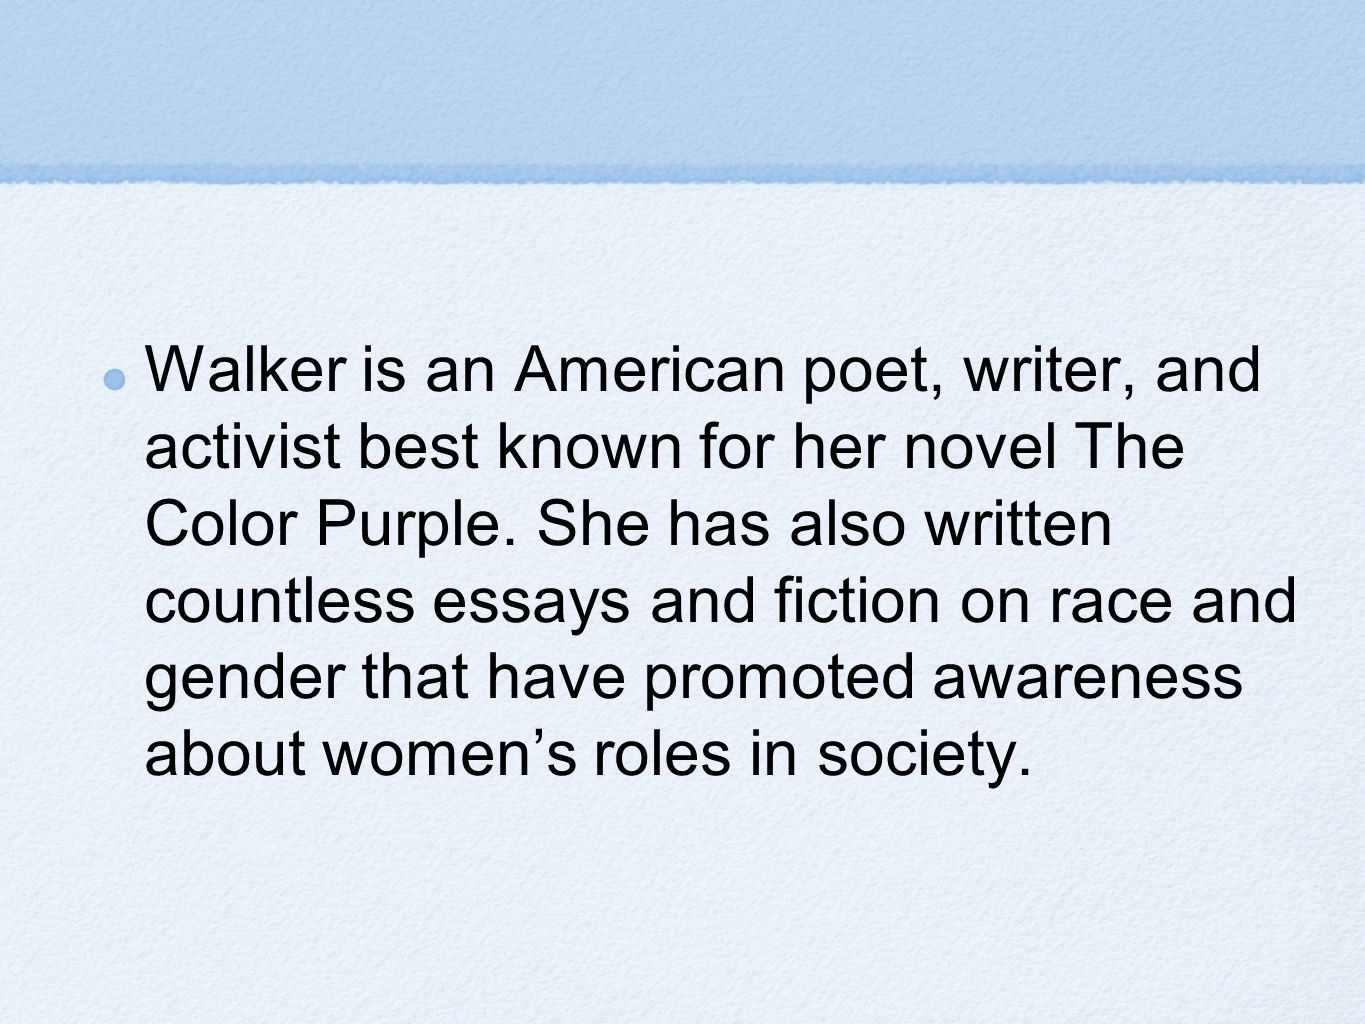 Walker is an American poet, writer, and activist best known for her novel The Color Purple.